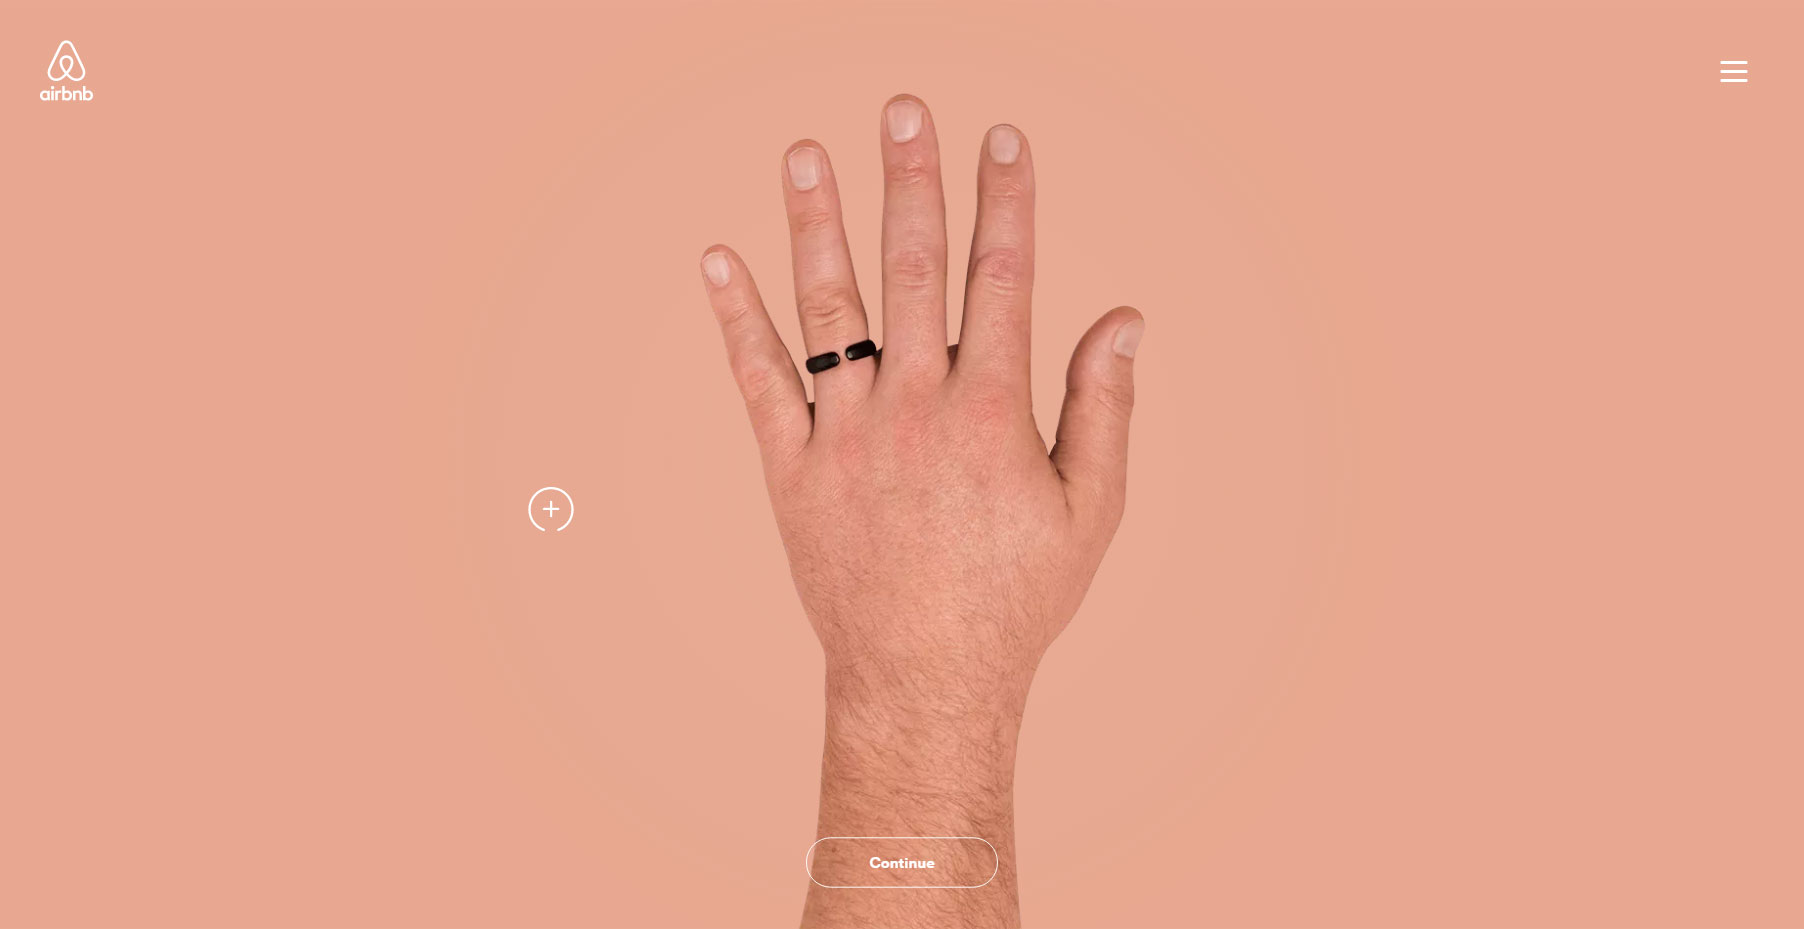 Airbnb - Until We All Belong - Website of the Day